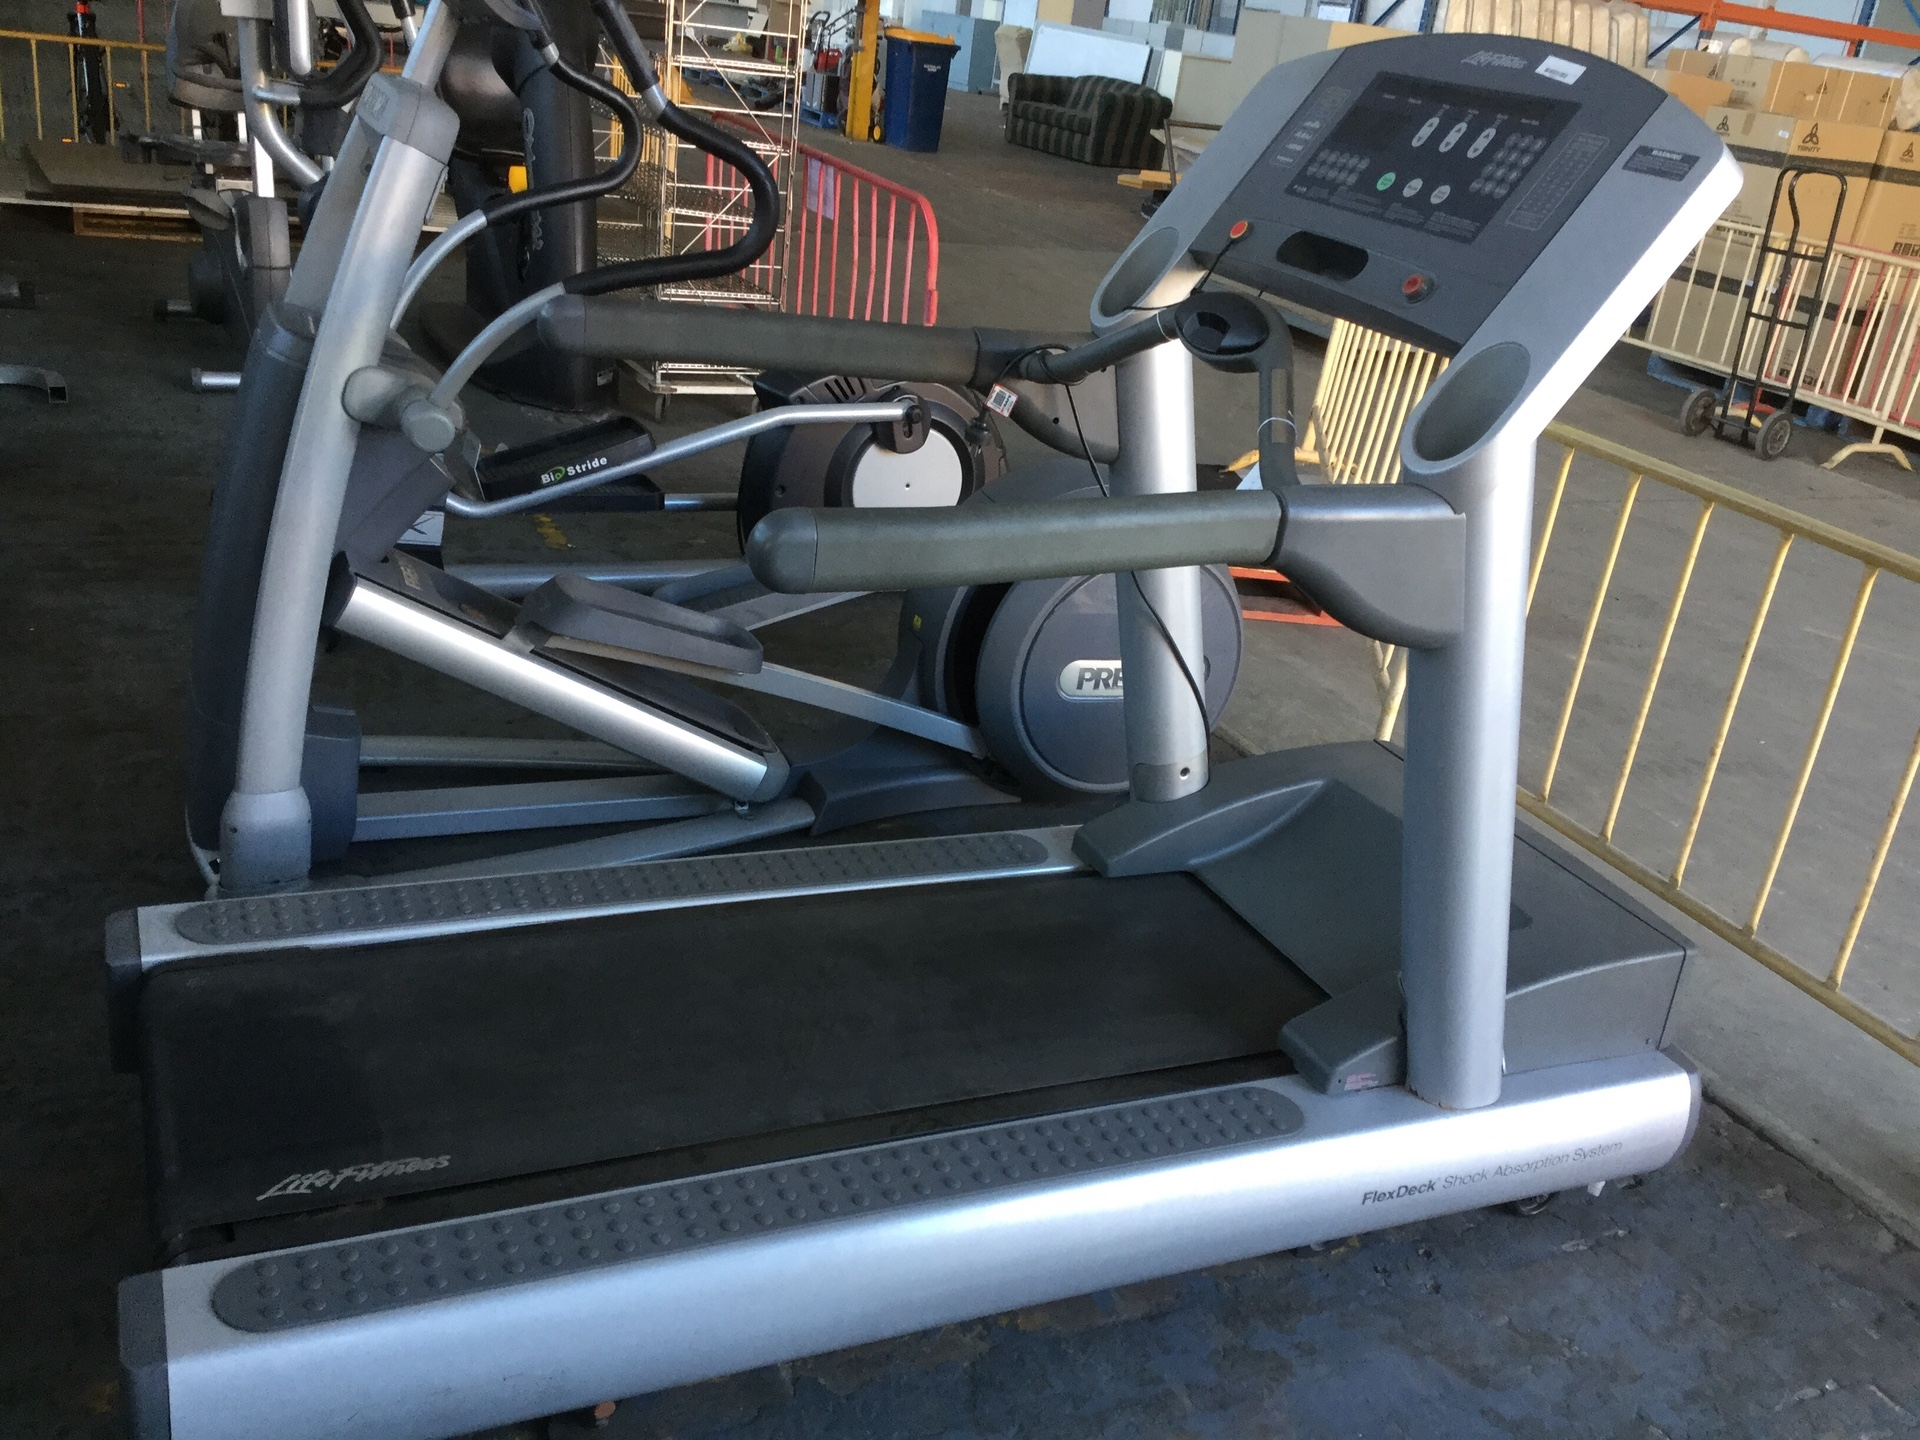 Commercial Treadmill, Life Fitness, 23kmph 180kg User Weight